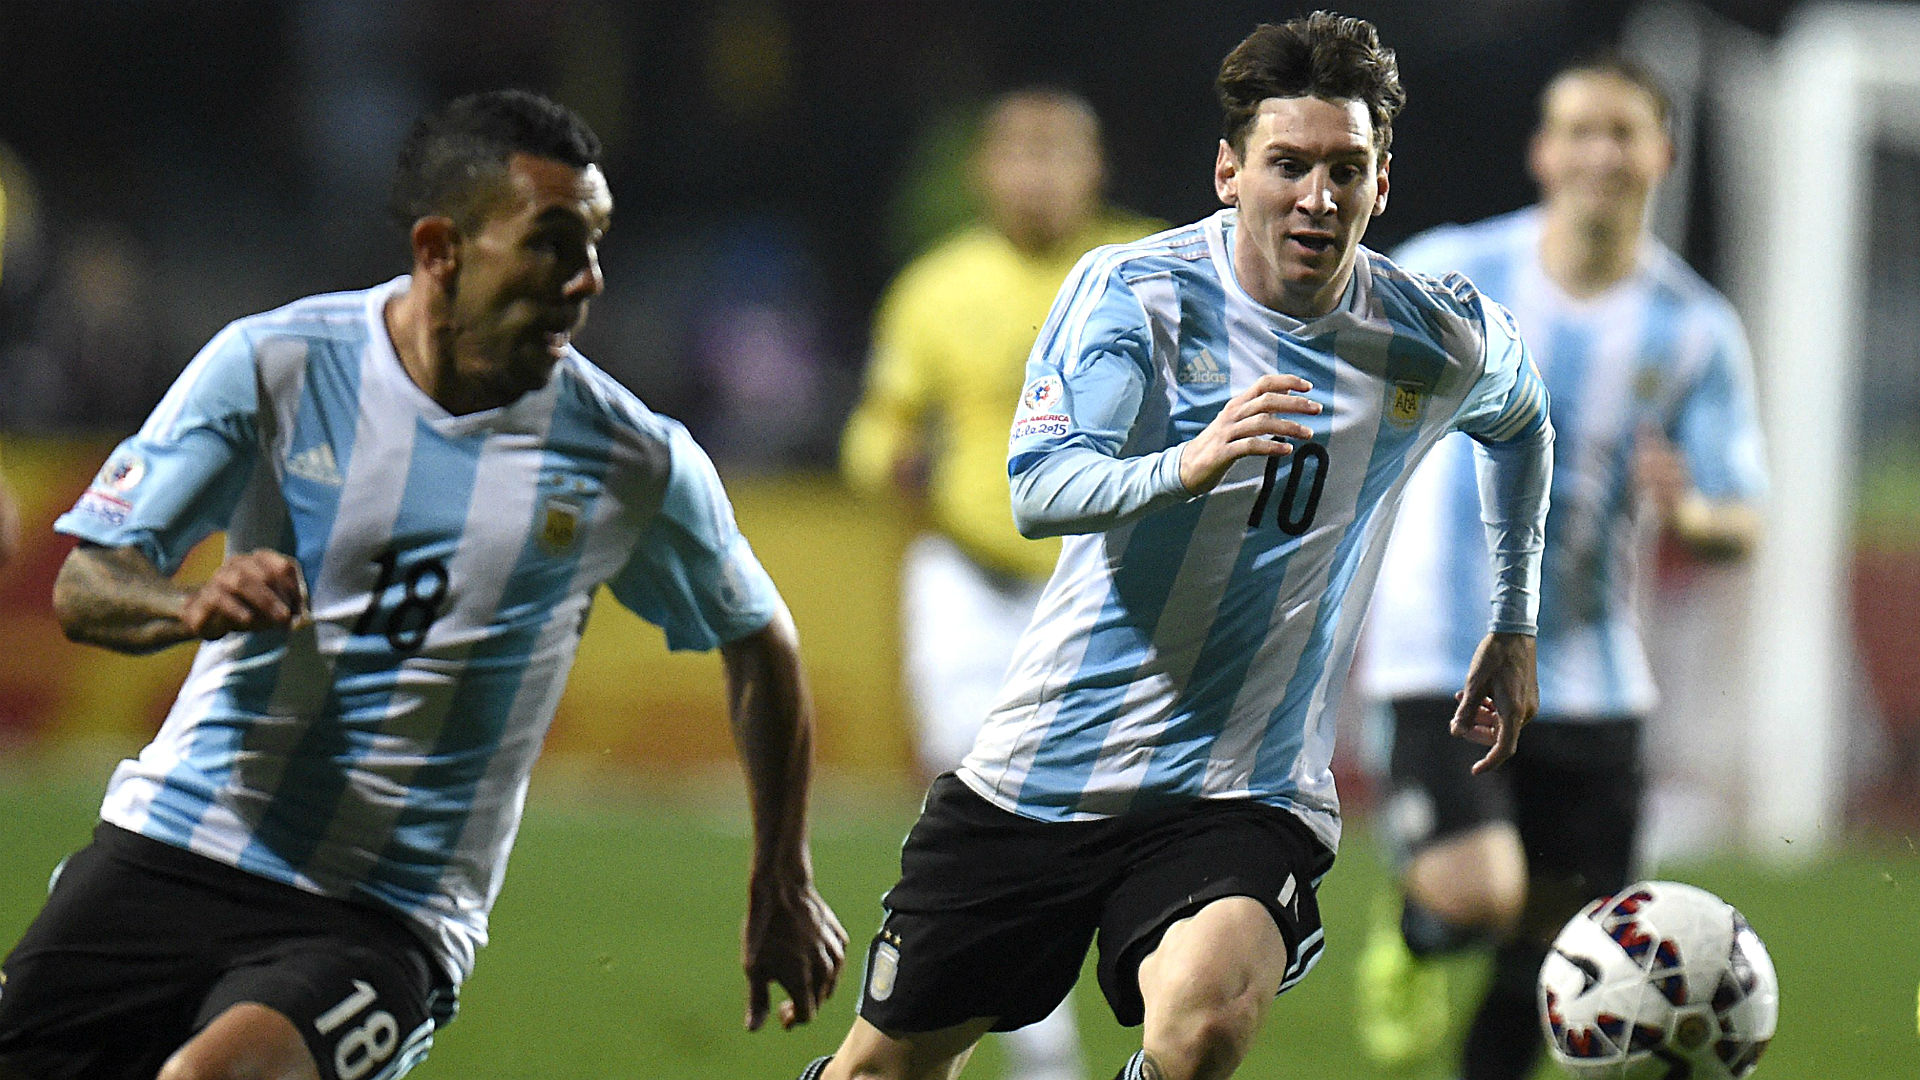 Argentina vs. Paraguay odds and picks – A parlay to consider